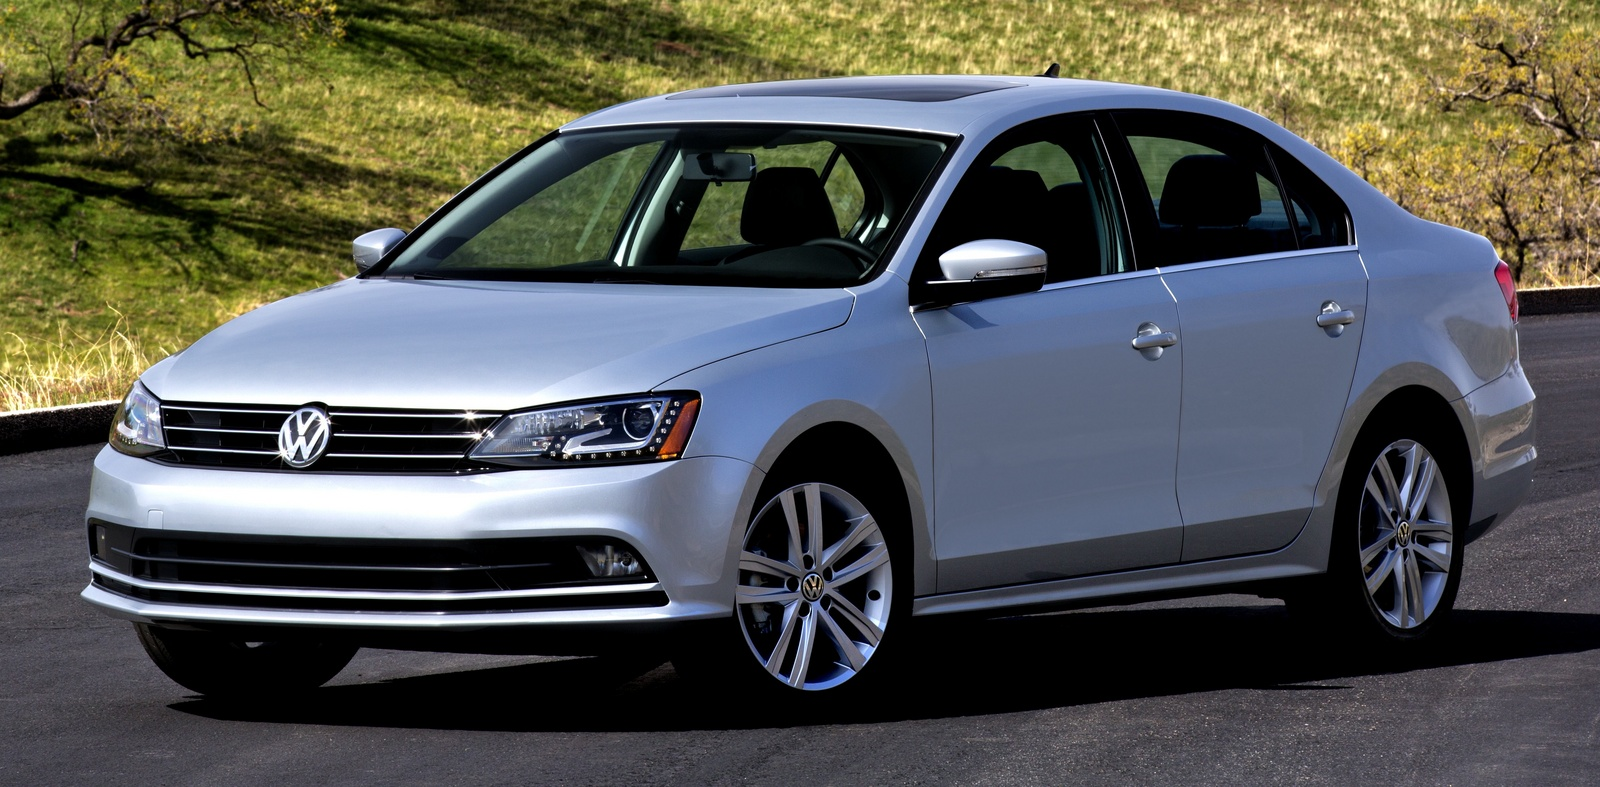 2015 volkswagen jetta test drive review cargurus. Black Bedroom Furniture Sets. Home Design Ideas